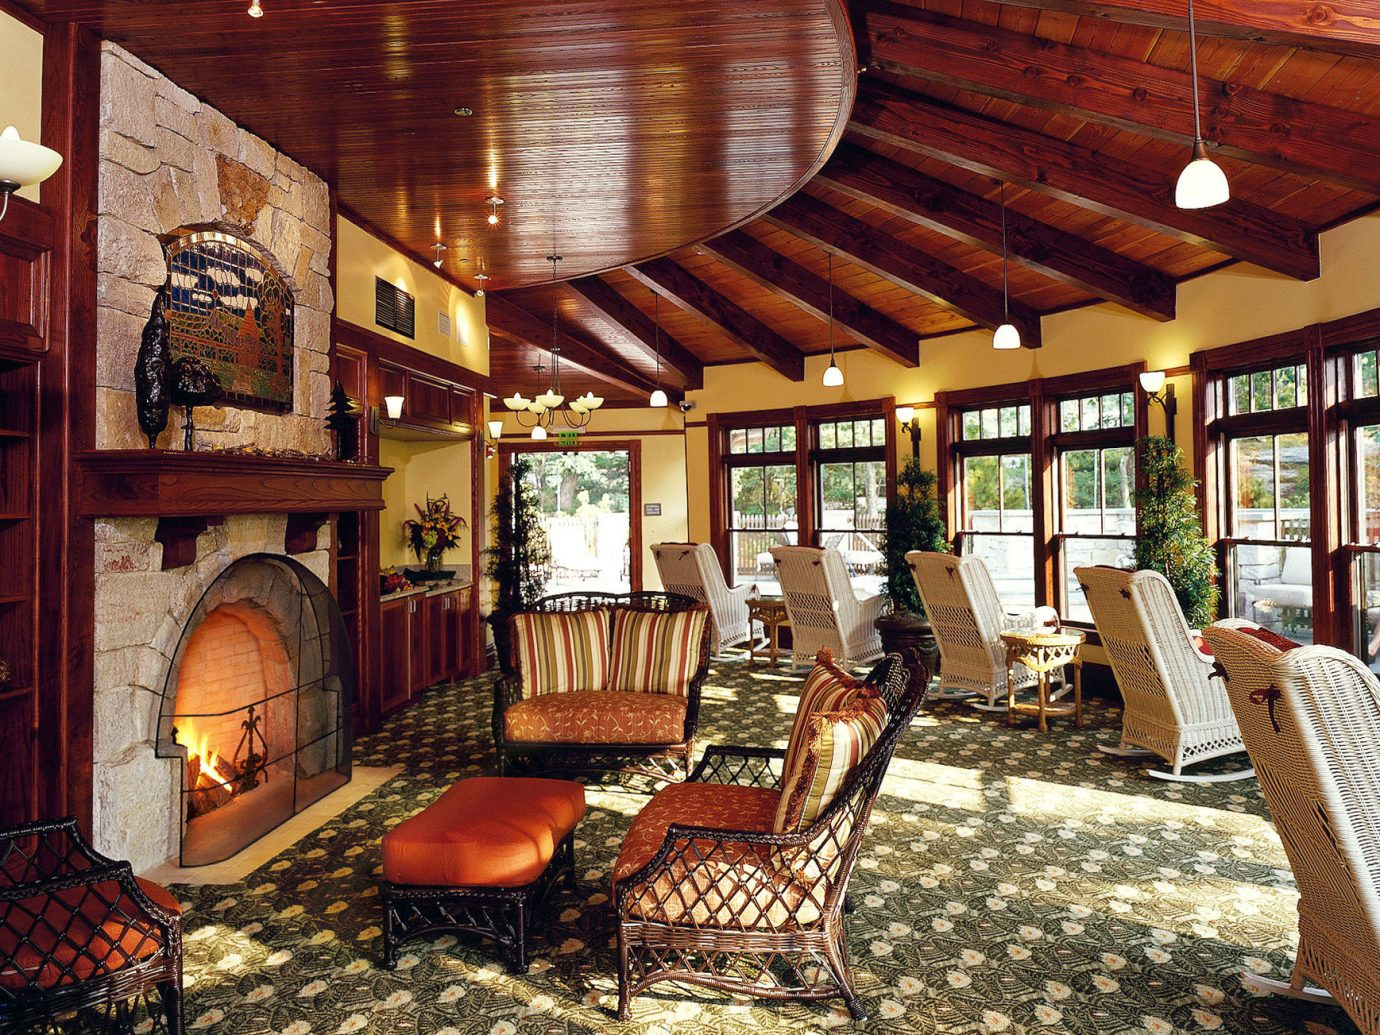 Classic Fireplace Hotels Lakes + Rivers Lounge Luxury Mountains New York Outdoor Activities Resort Romance Romantic Hotels indoor property room ceiling Living estate living room home furniture interior design log cabin cottage mansion Lobby area several